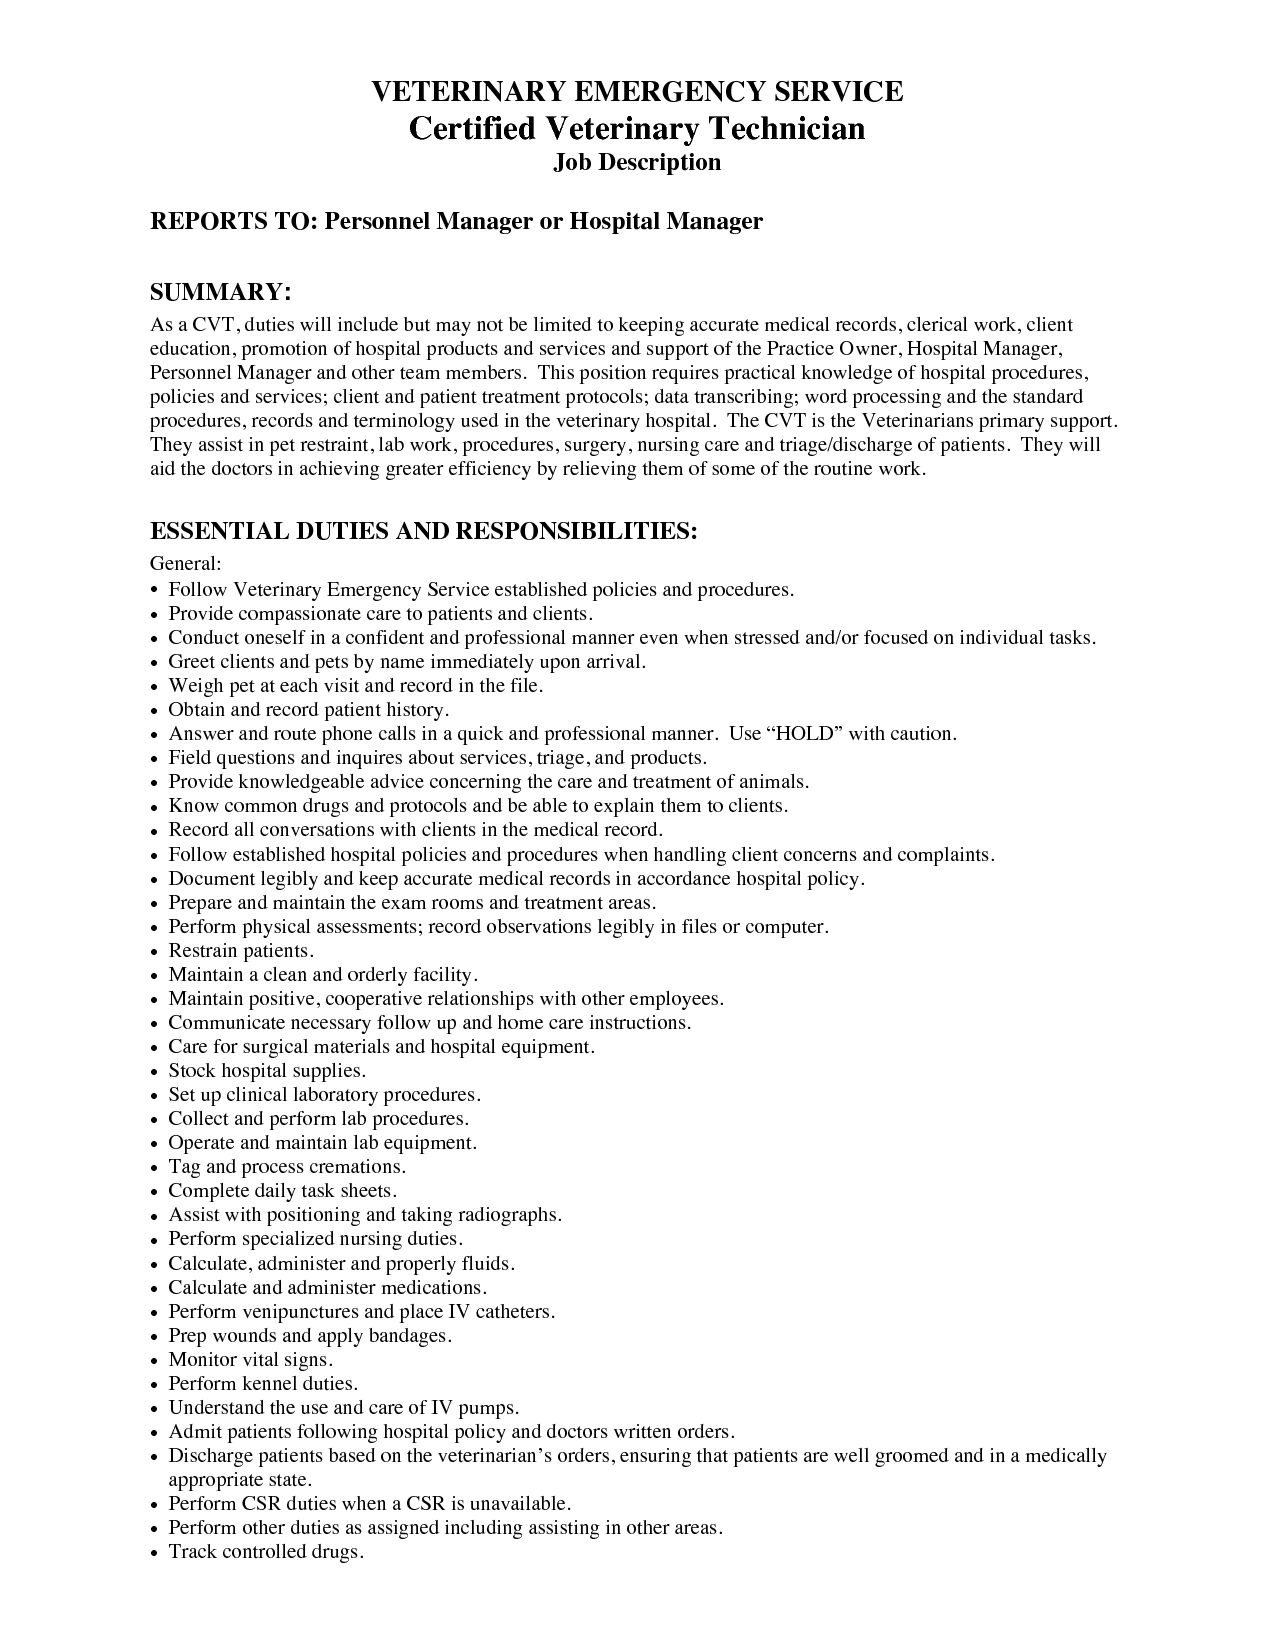 Resume Definition Job Veterinary Technician Resume  My Work  Pinterest  Veterinary